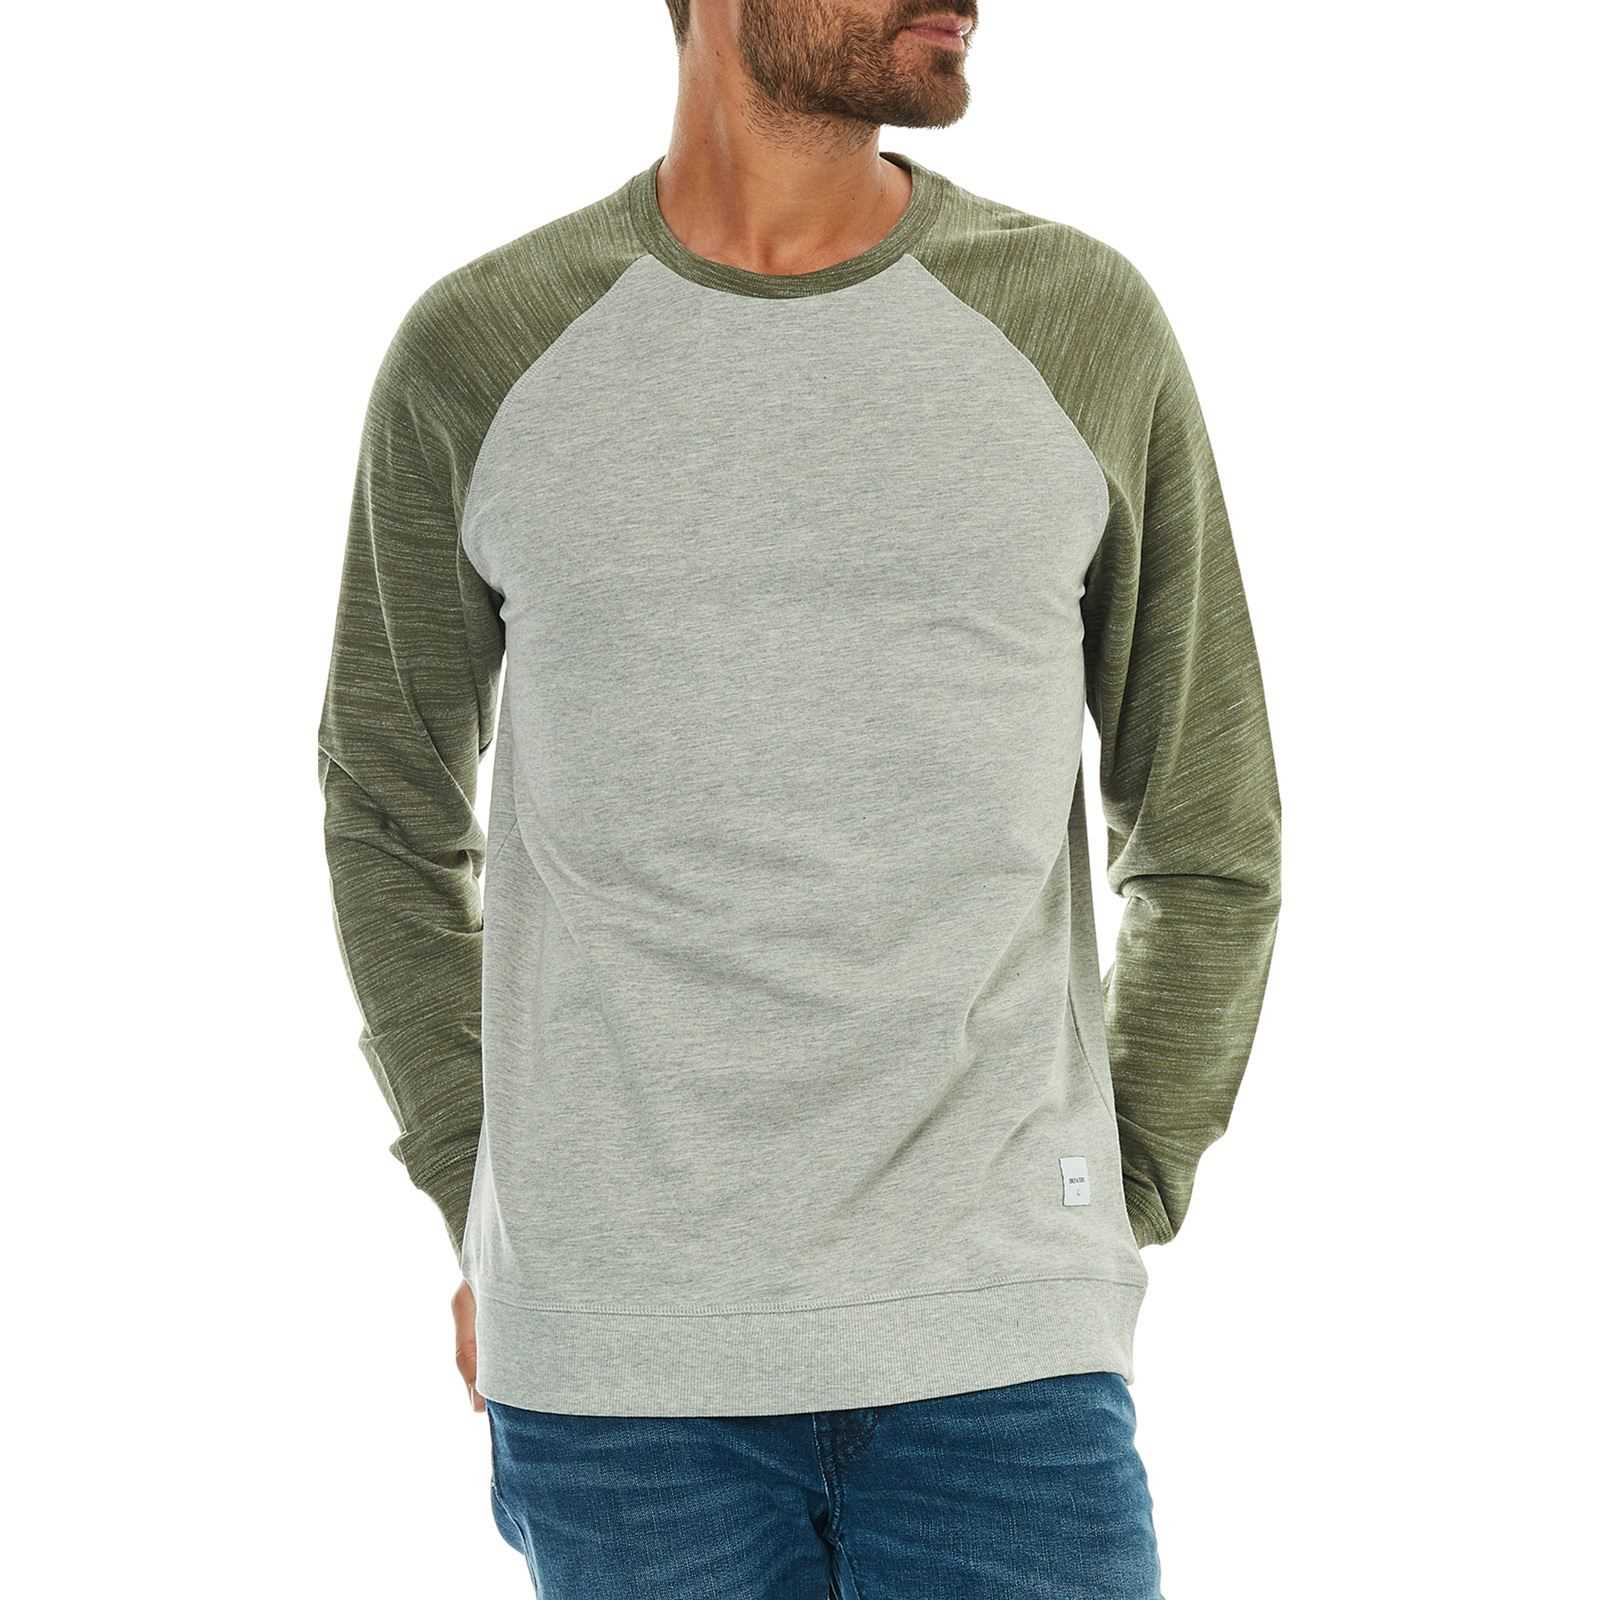 Brandalley Sweat Sons Bicolore amp; Only Saint Shirt t61n5Y5x4